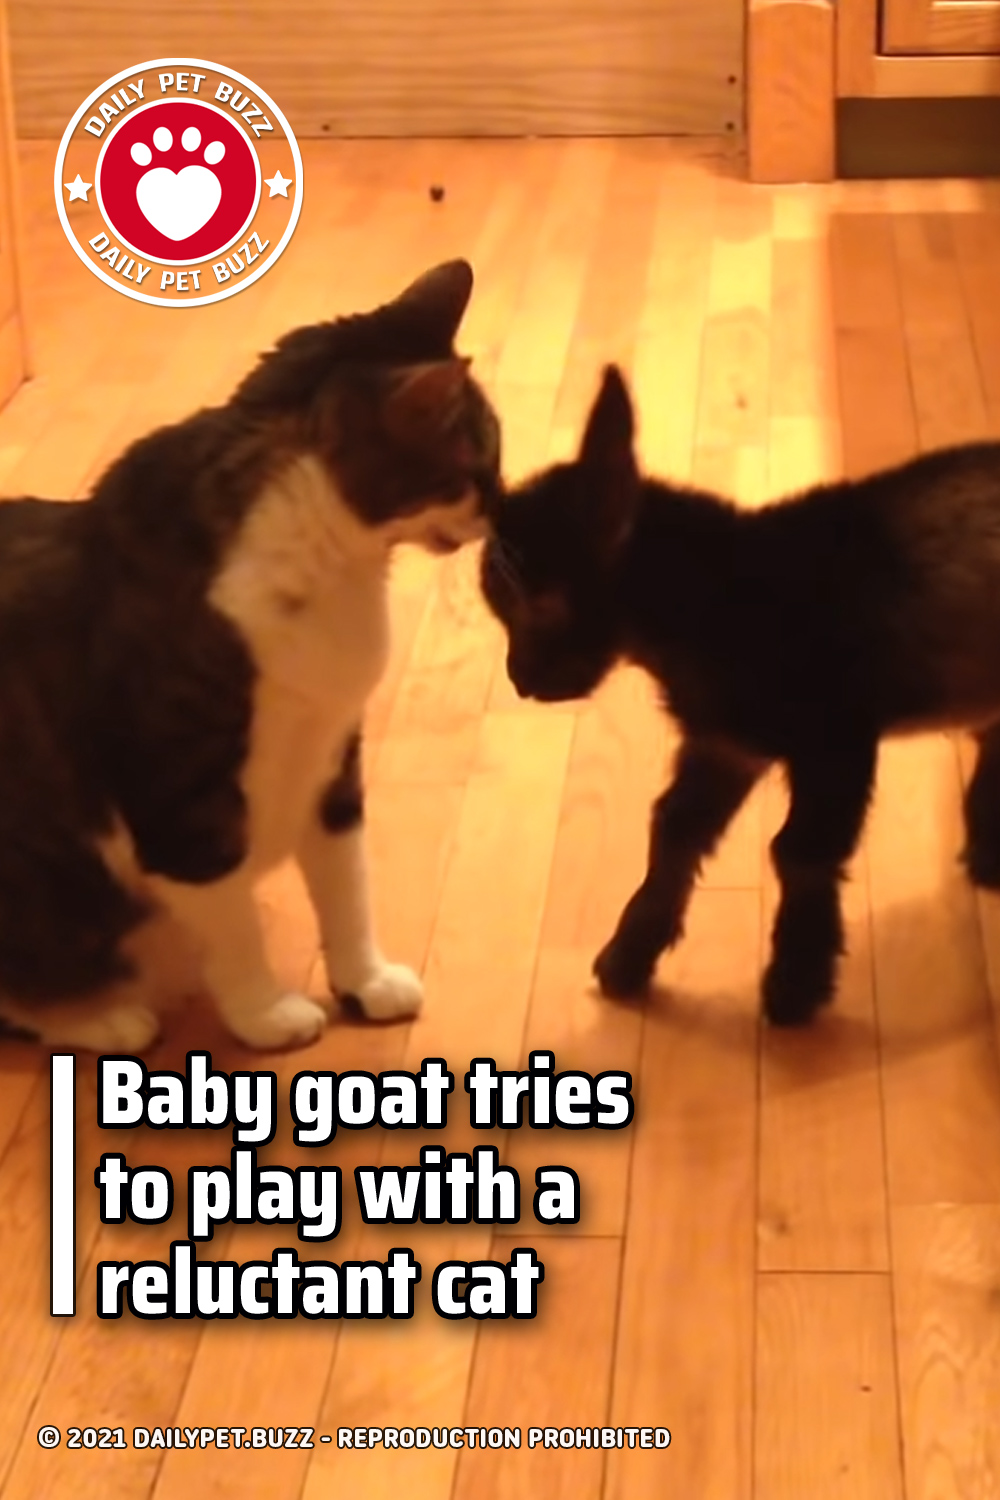 Baby goat tries to play with a reluctant cat